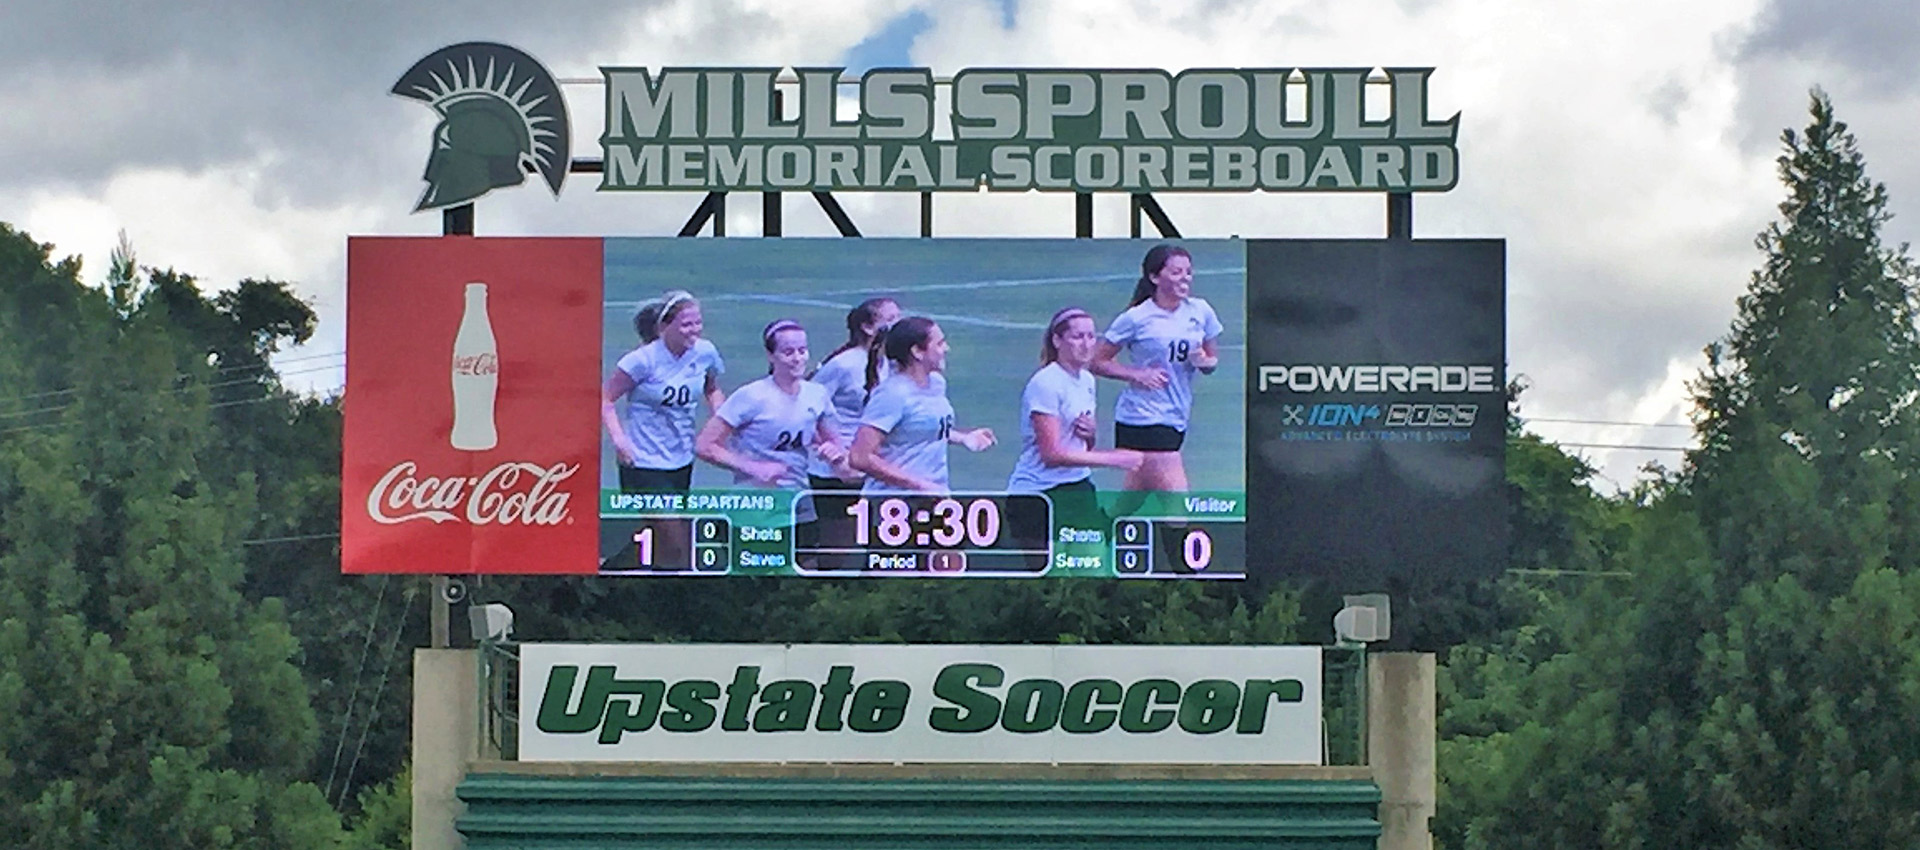 USC Upstate Soccer